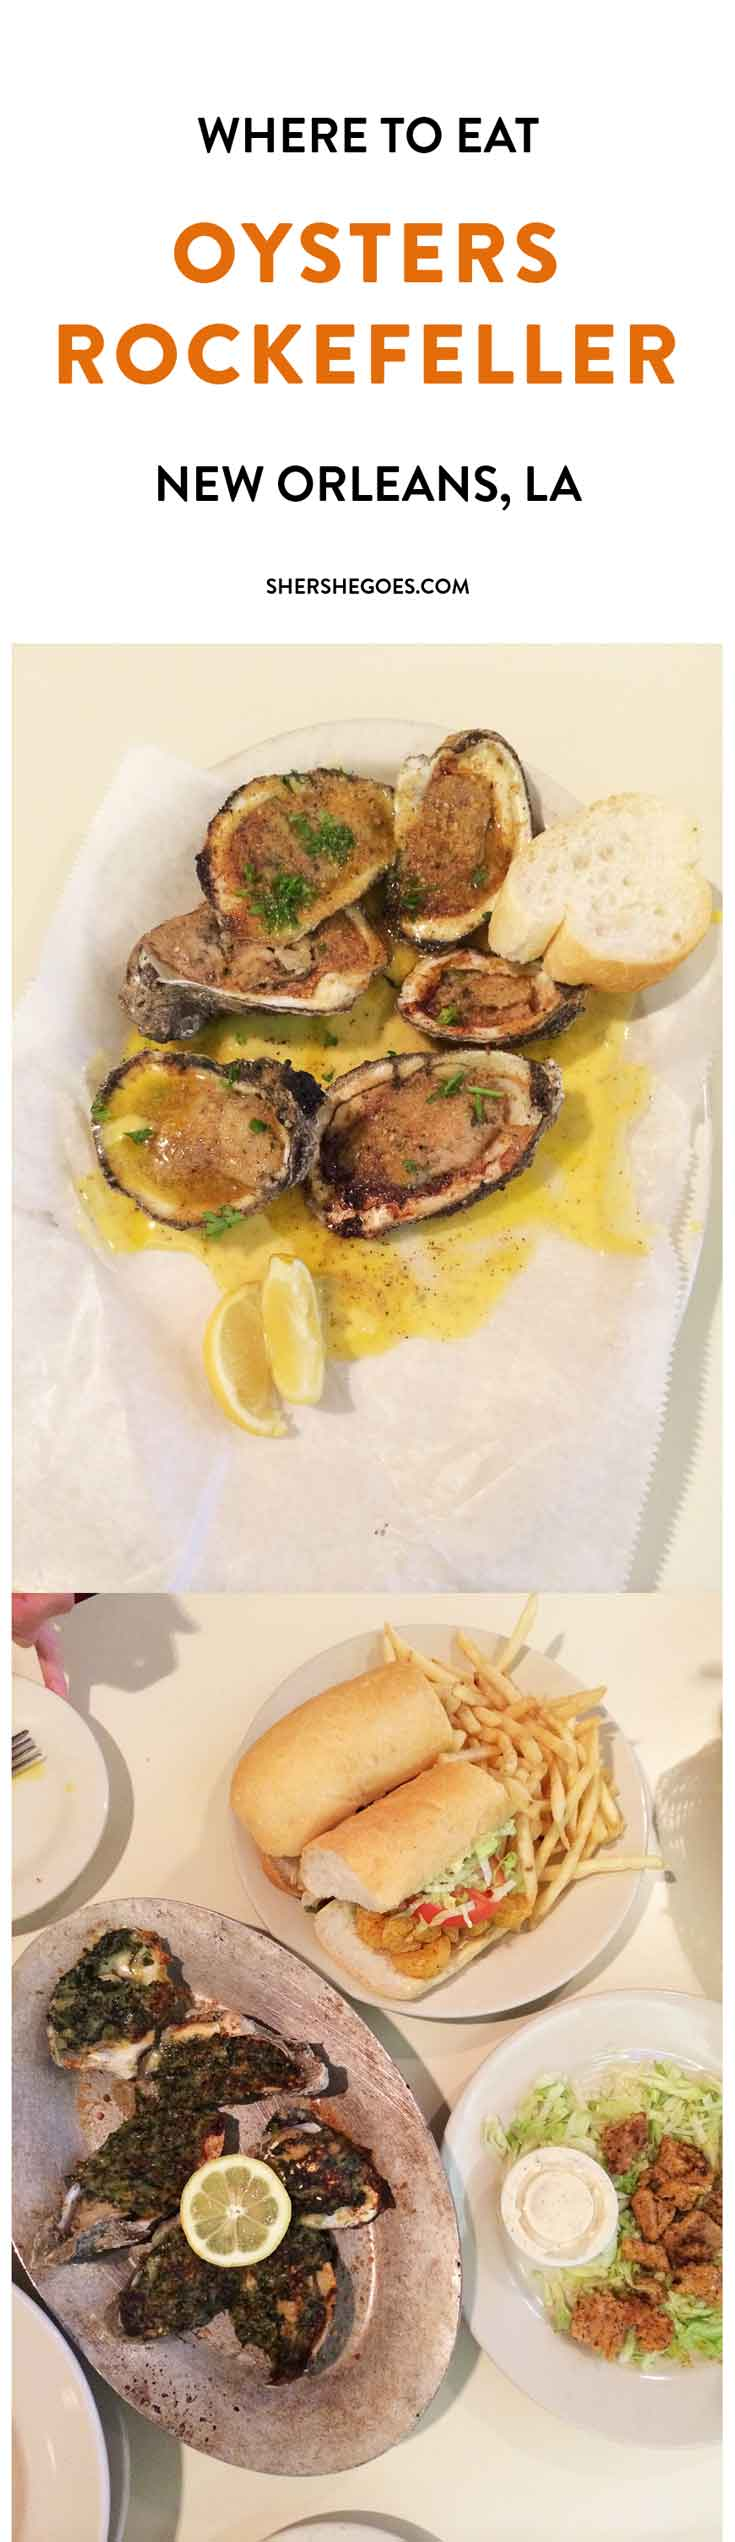 Where-to-Eat-the-Best-Oysters-Rockefeller-in-New-Orleans-shershegoes